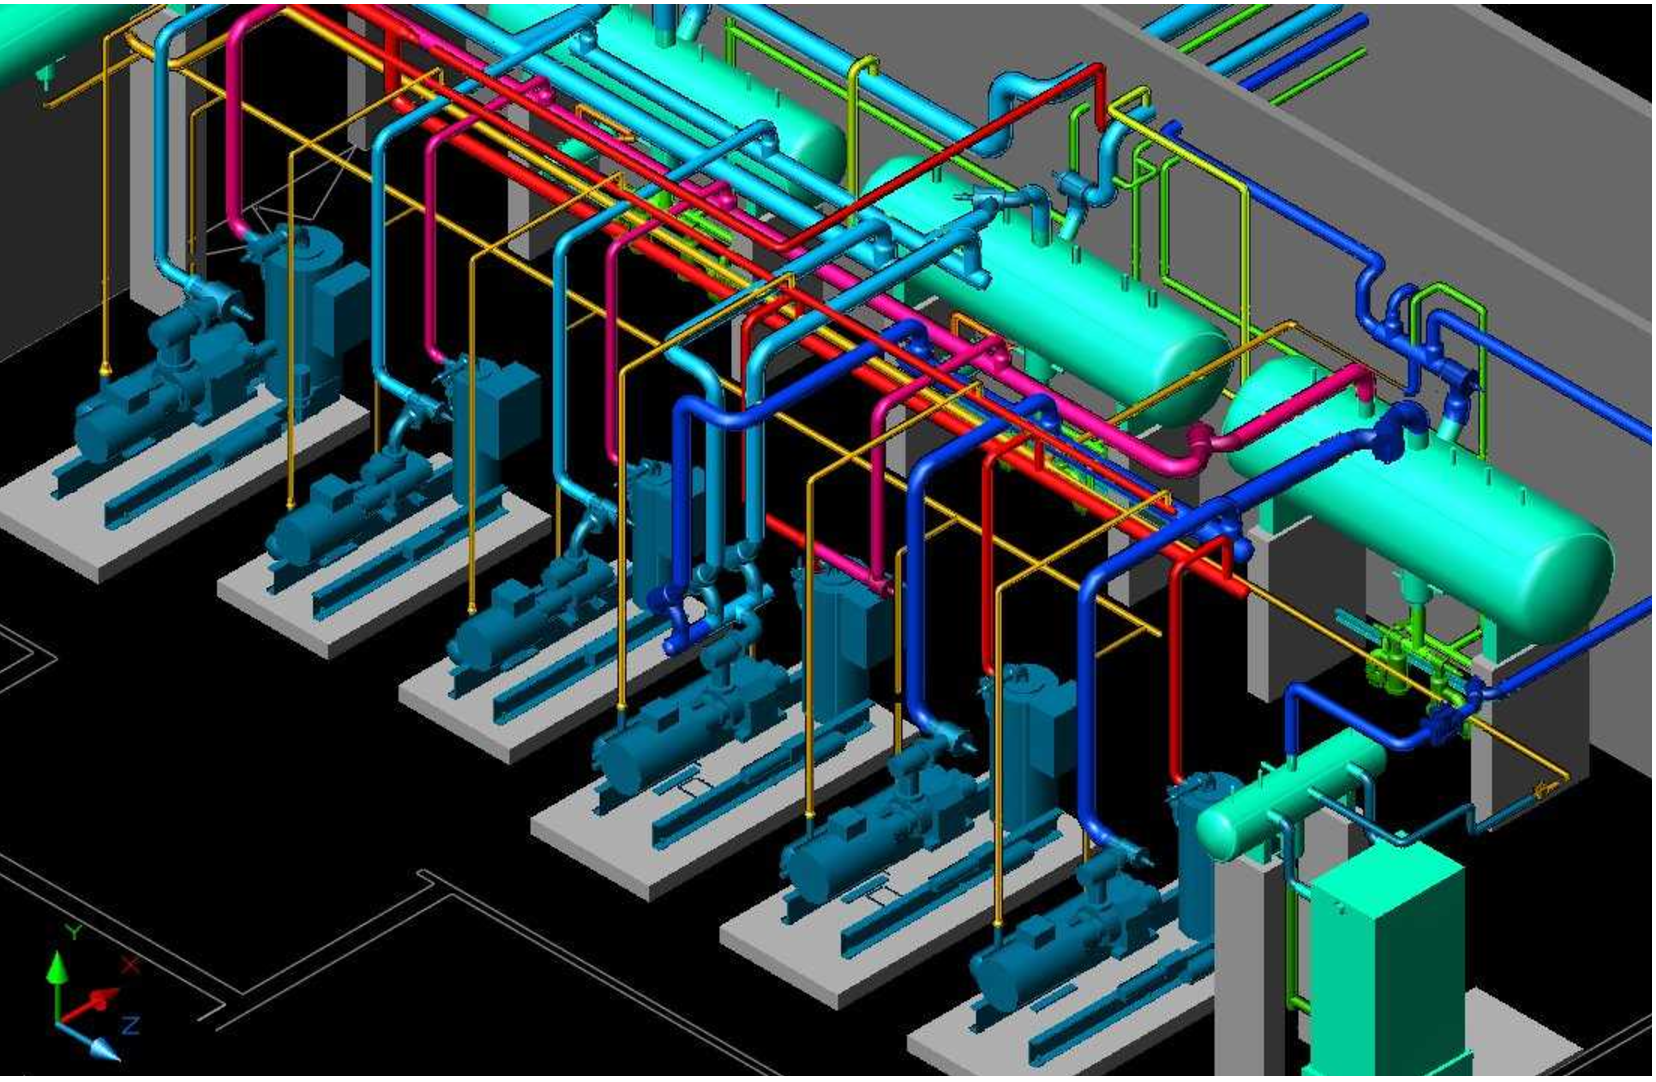 2d 3d piping software for engineers and pipers rh asvic eu Pump Piping Diagram Pump Piping Diagram